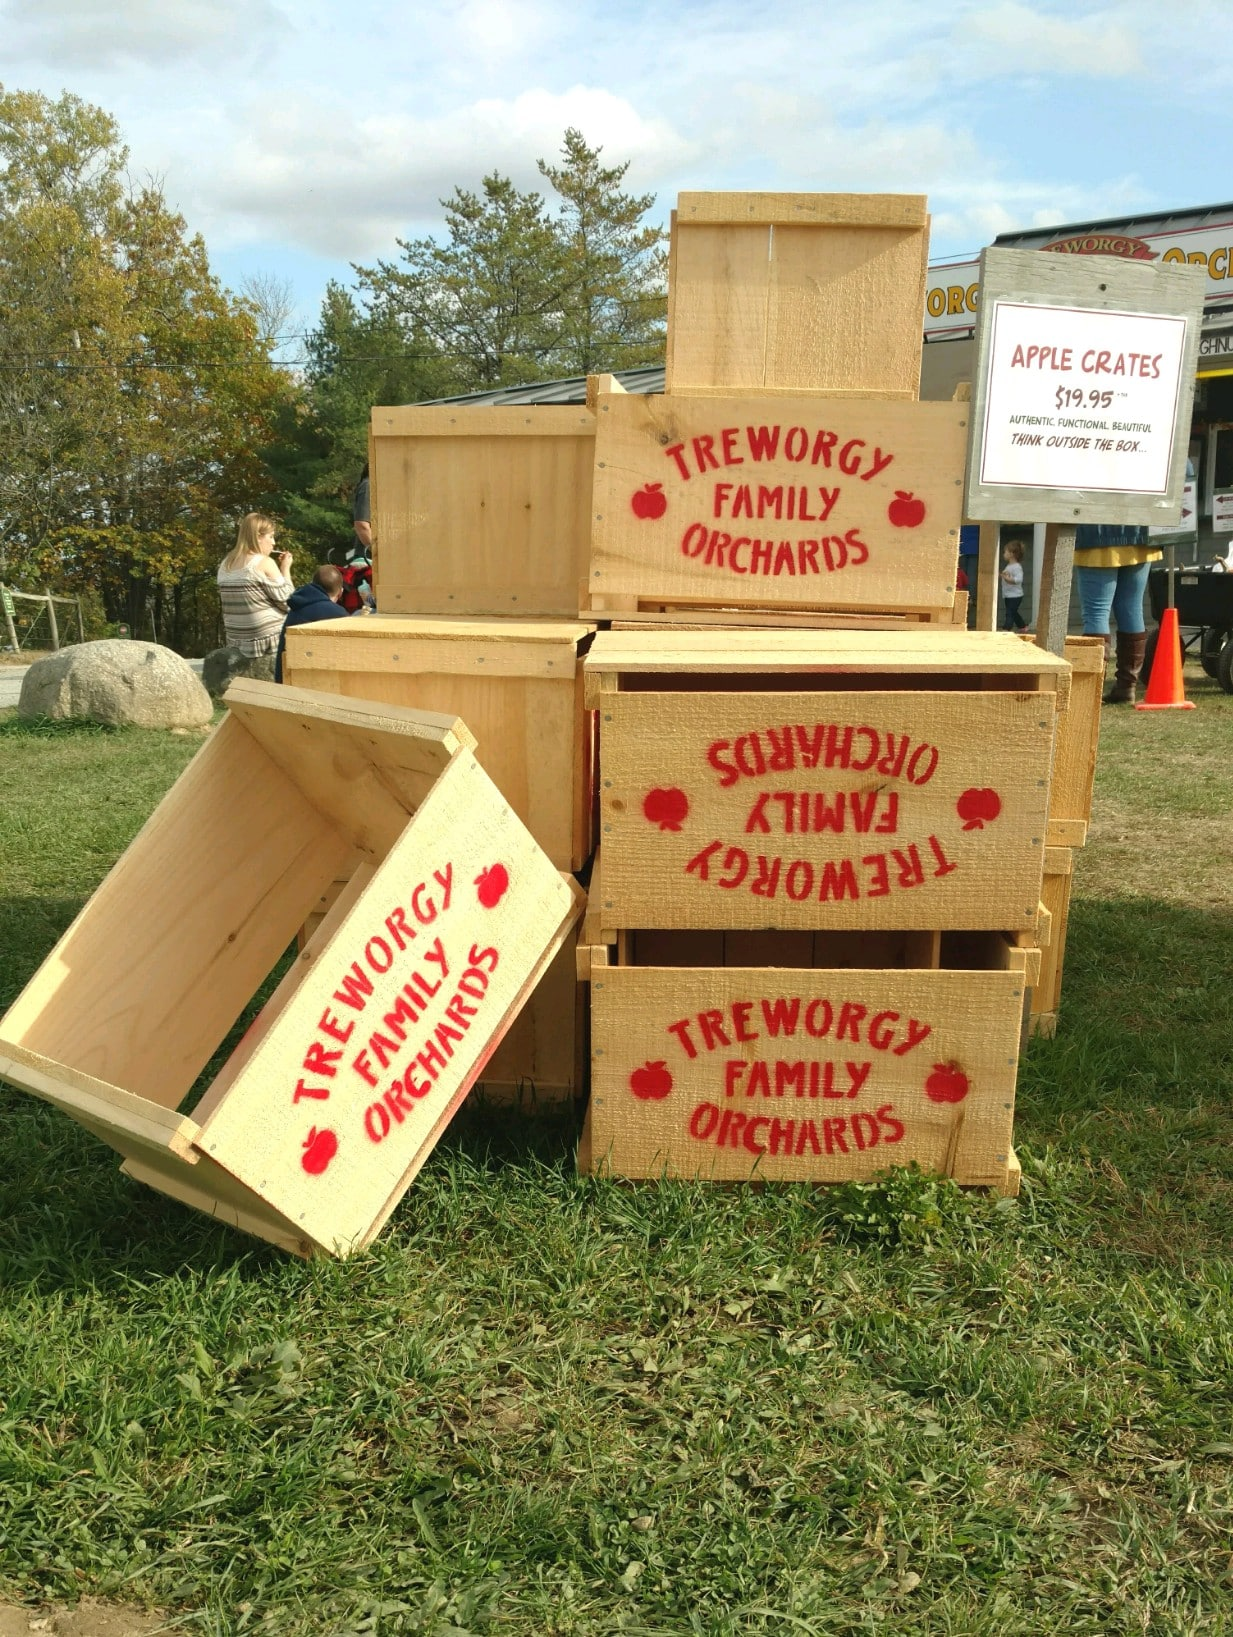 Treworgy Family Orchards – Levant, Maine – October 2017